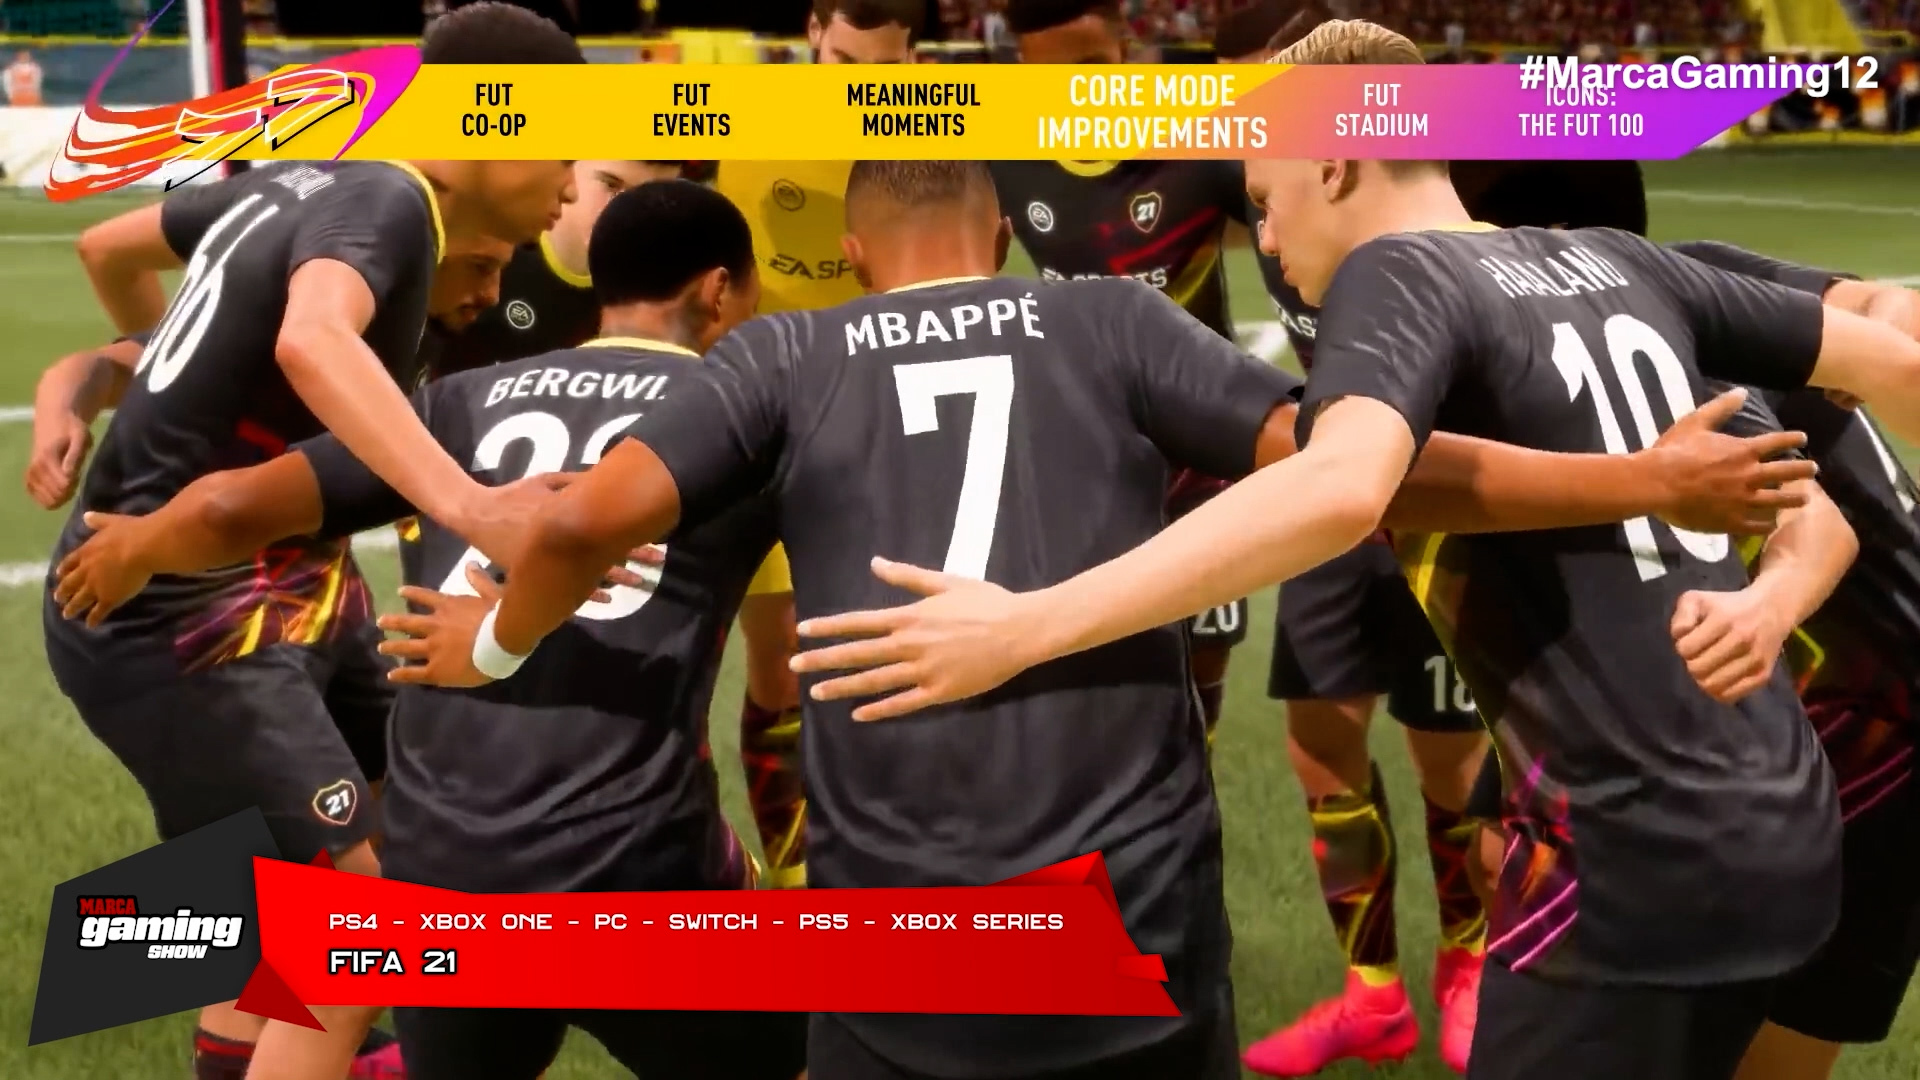 FIFA 21 (PS4 - XBOX ONE - PC - SWITCH - PS5 - XBOX SERIES)